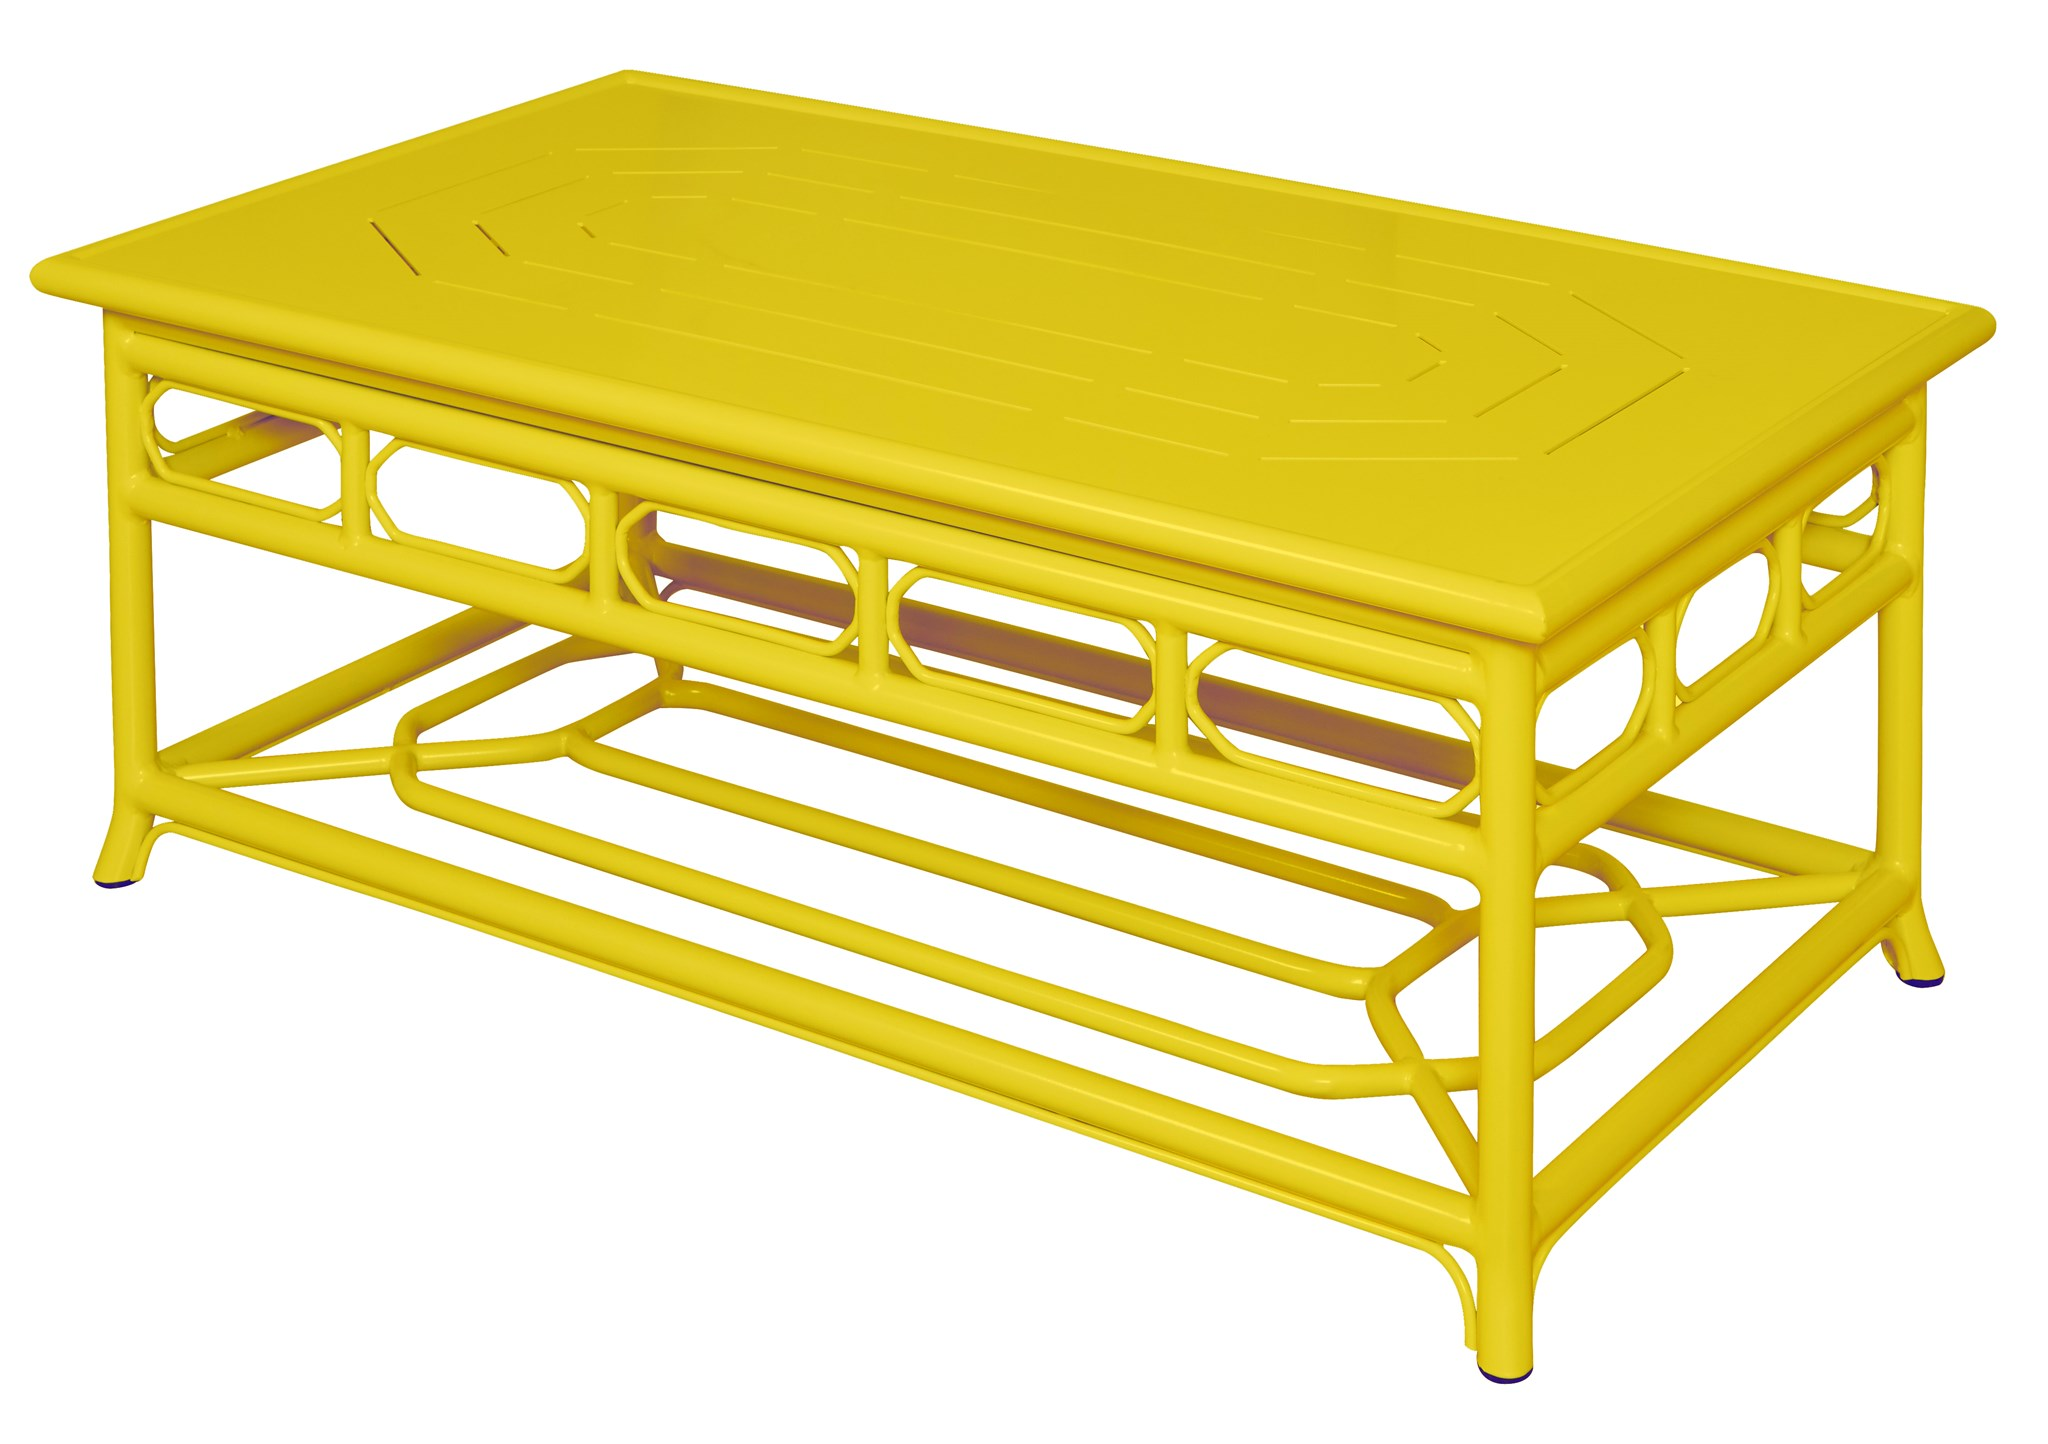 4 Season Regeant Coffee Table Aluminum Yellow seating Selamat